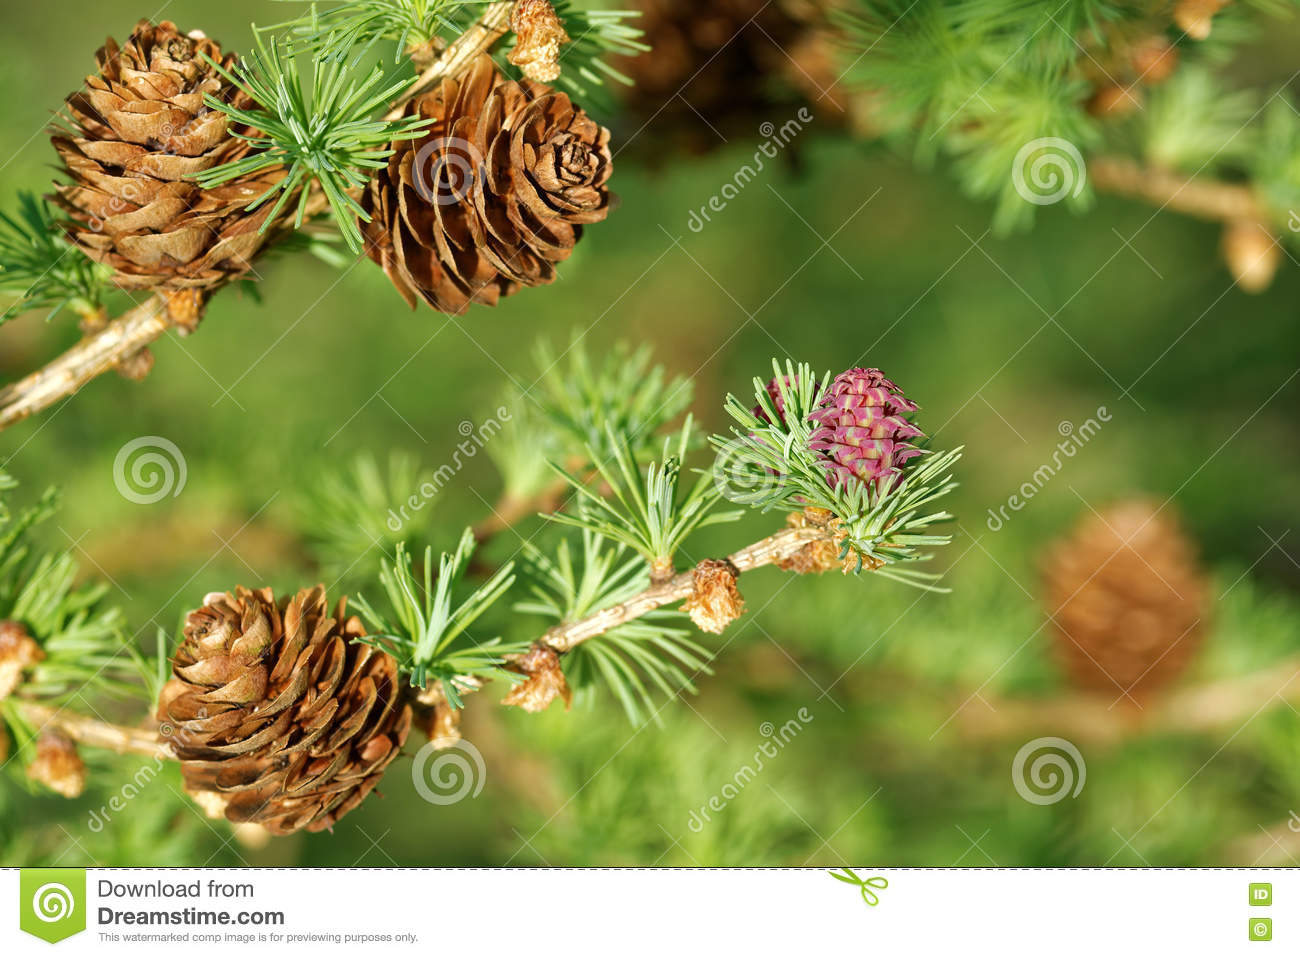 Larch Strobili Stock Photo.